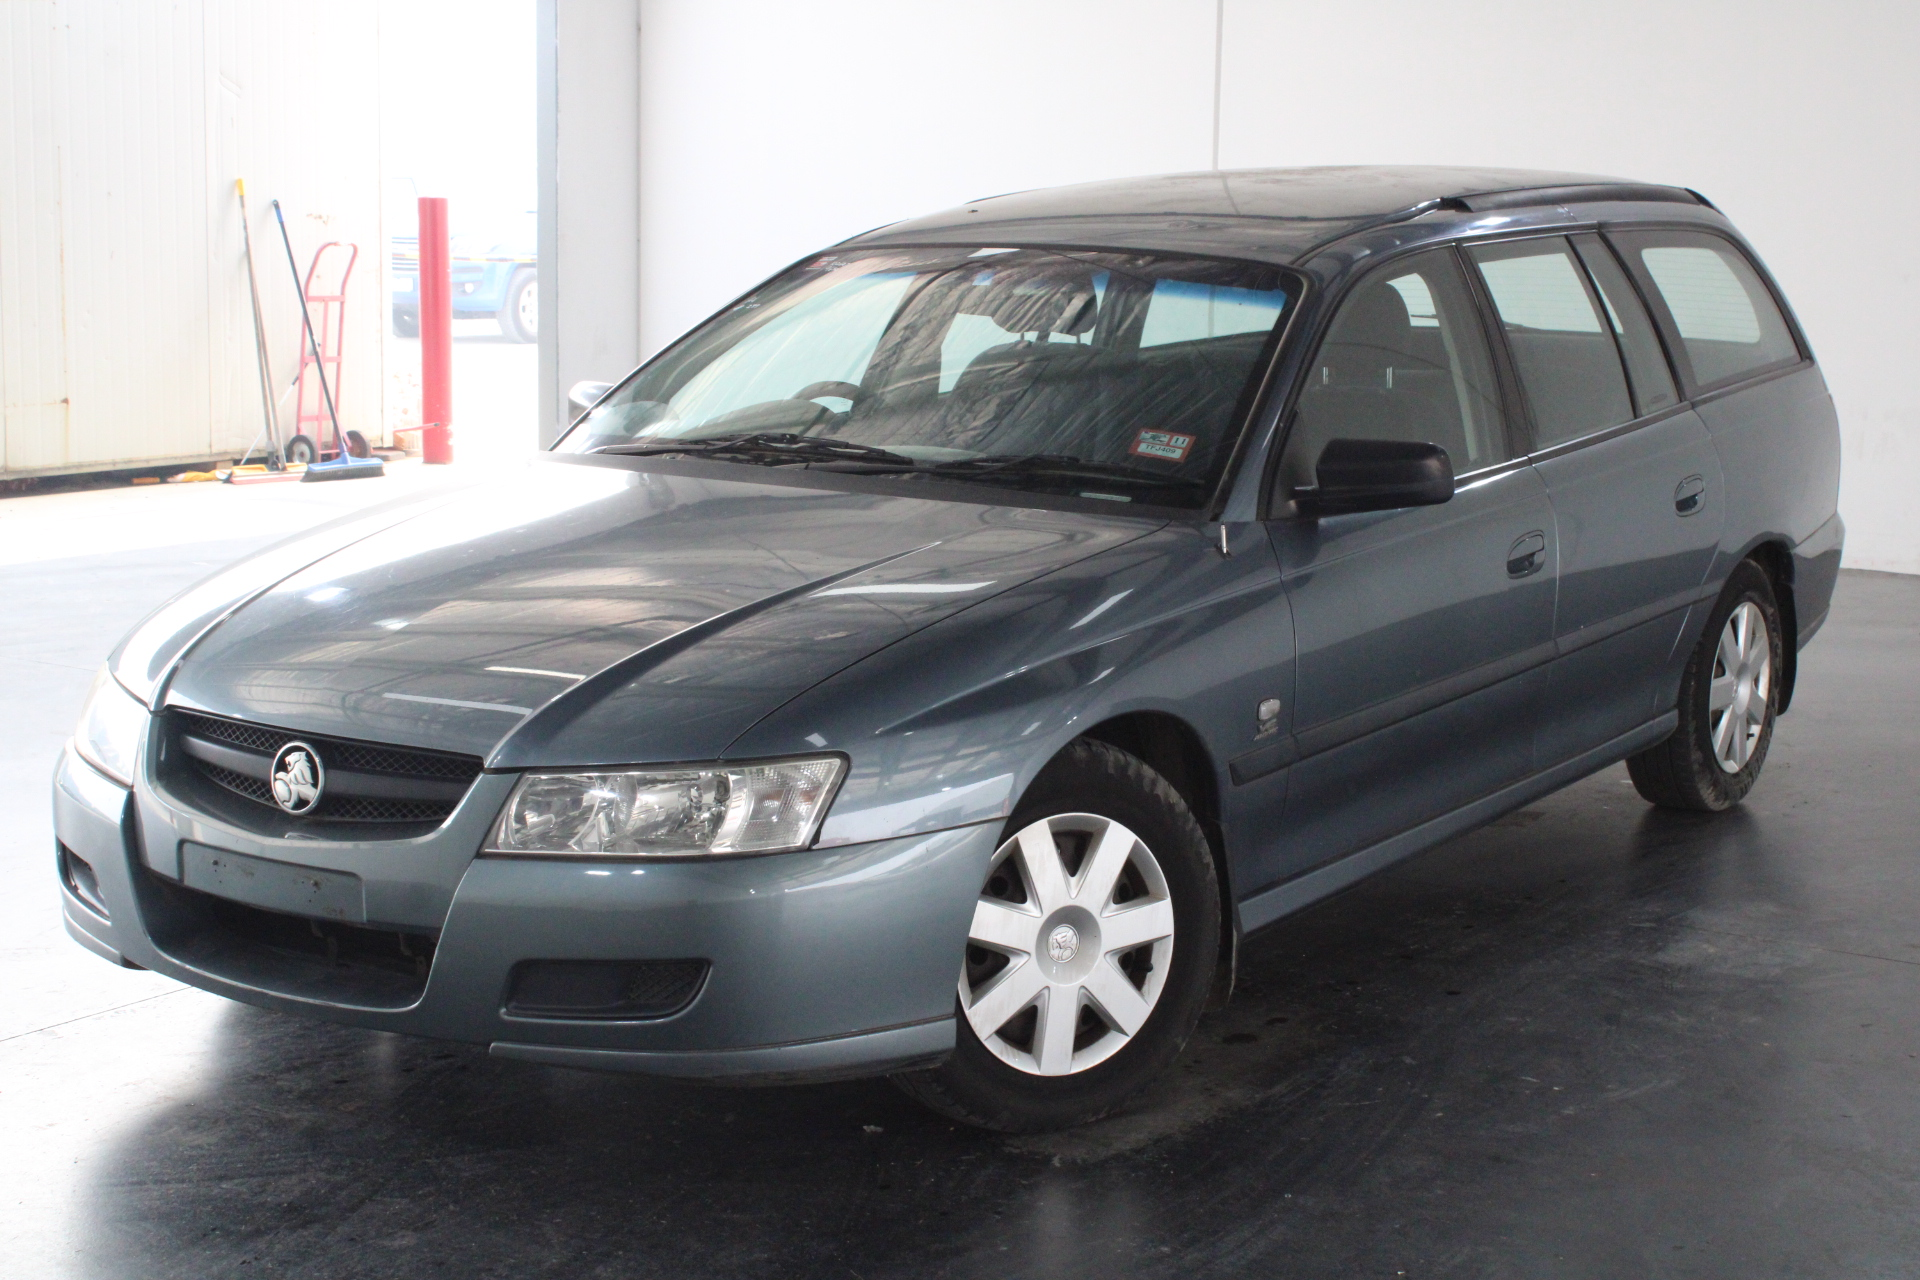 2004 Holden Commodore Executive VZ Automatic Wagon